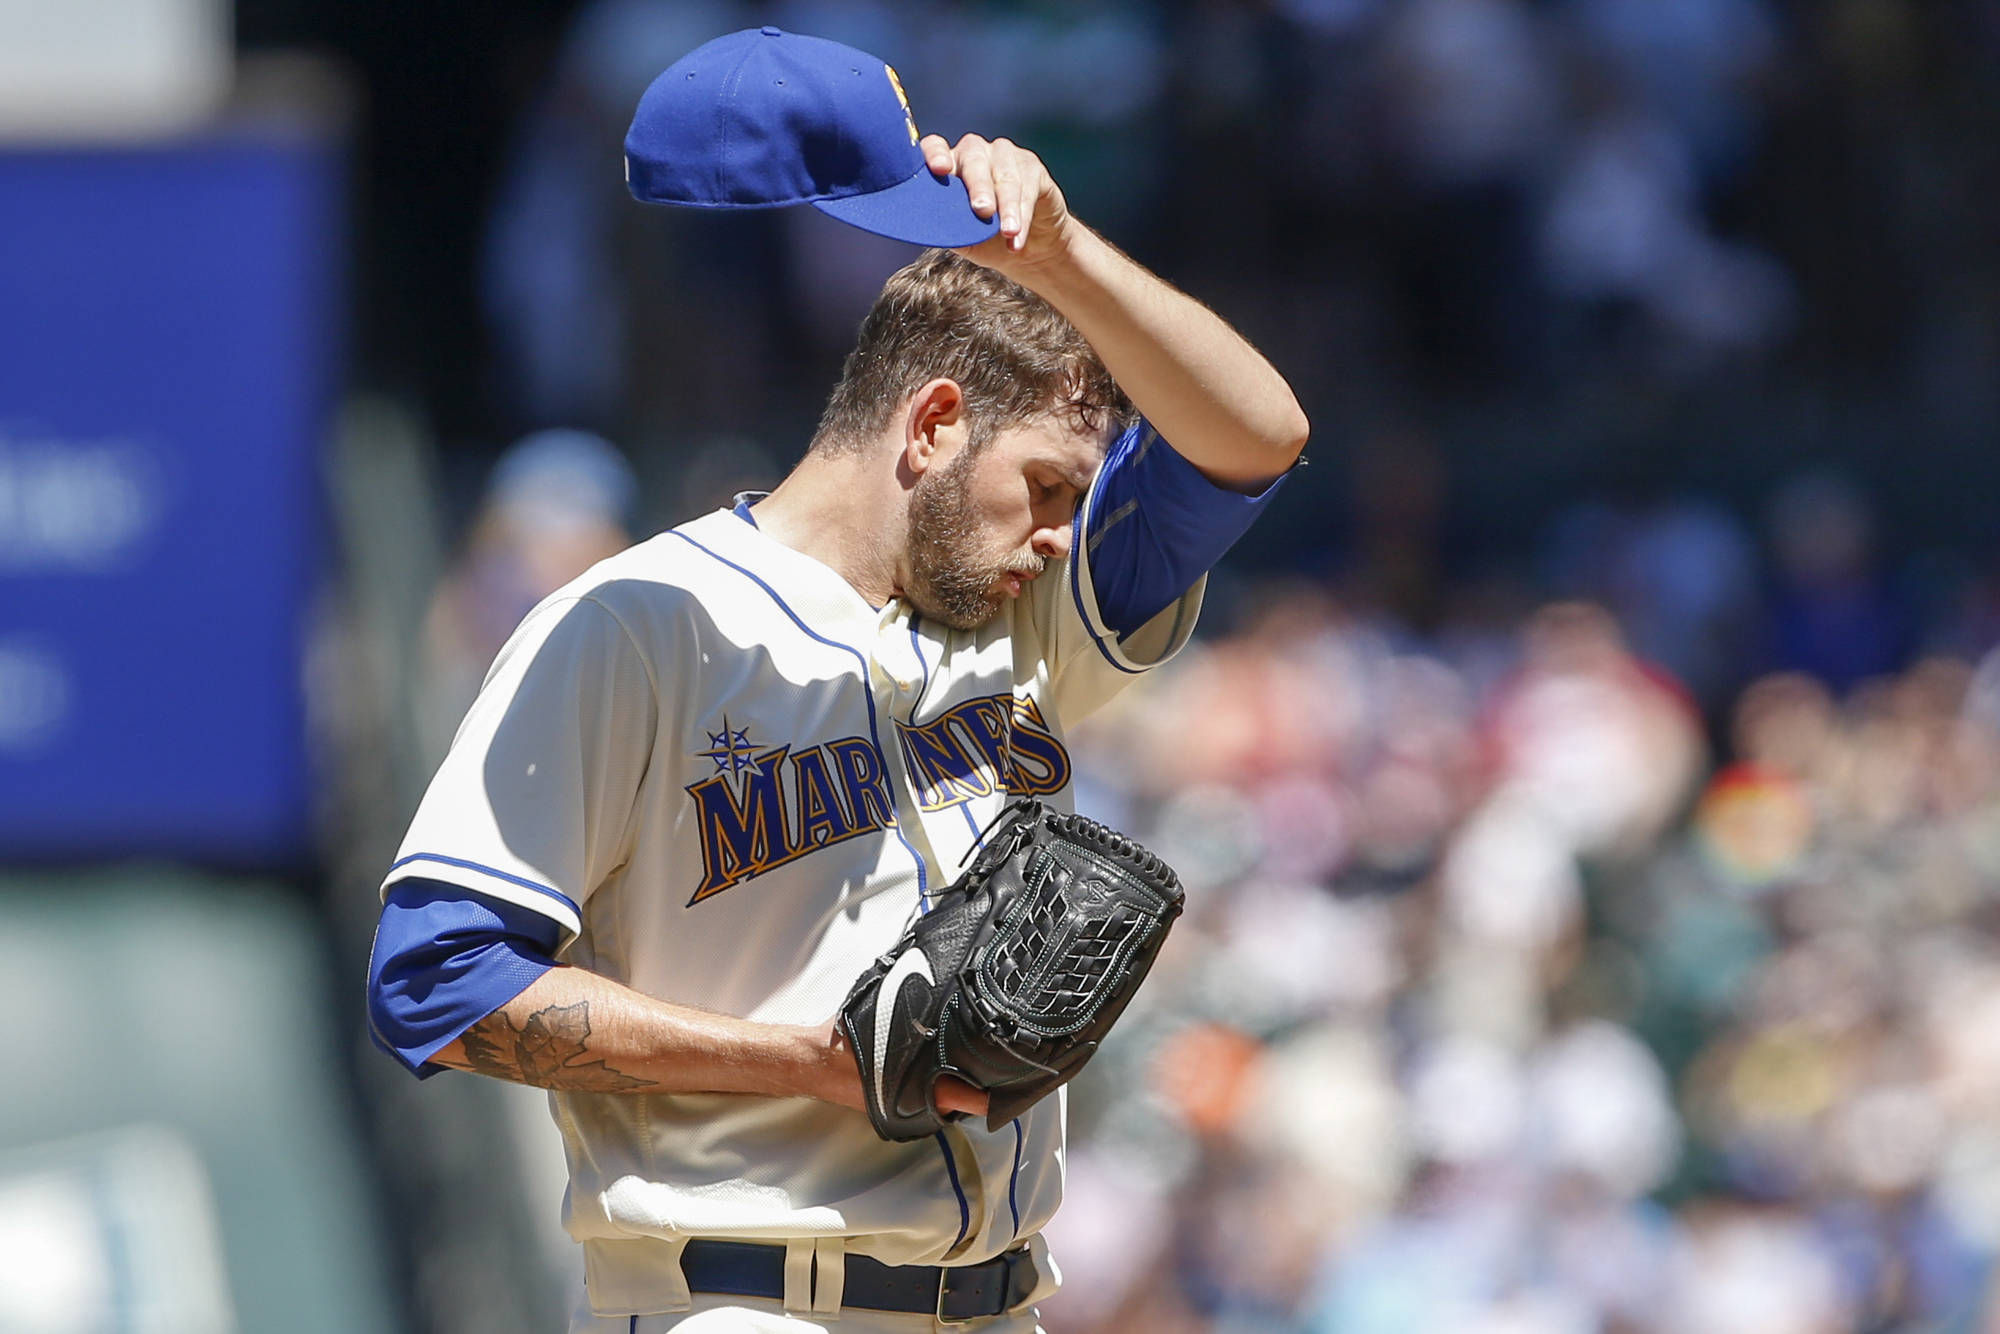 The Curious Case of James Paxton